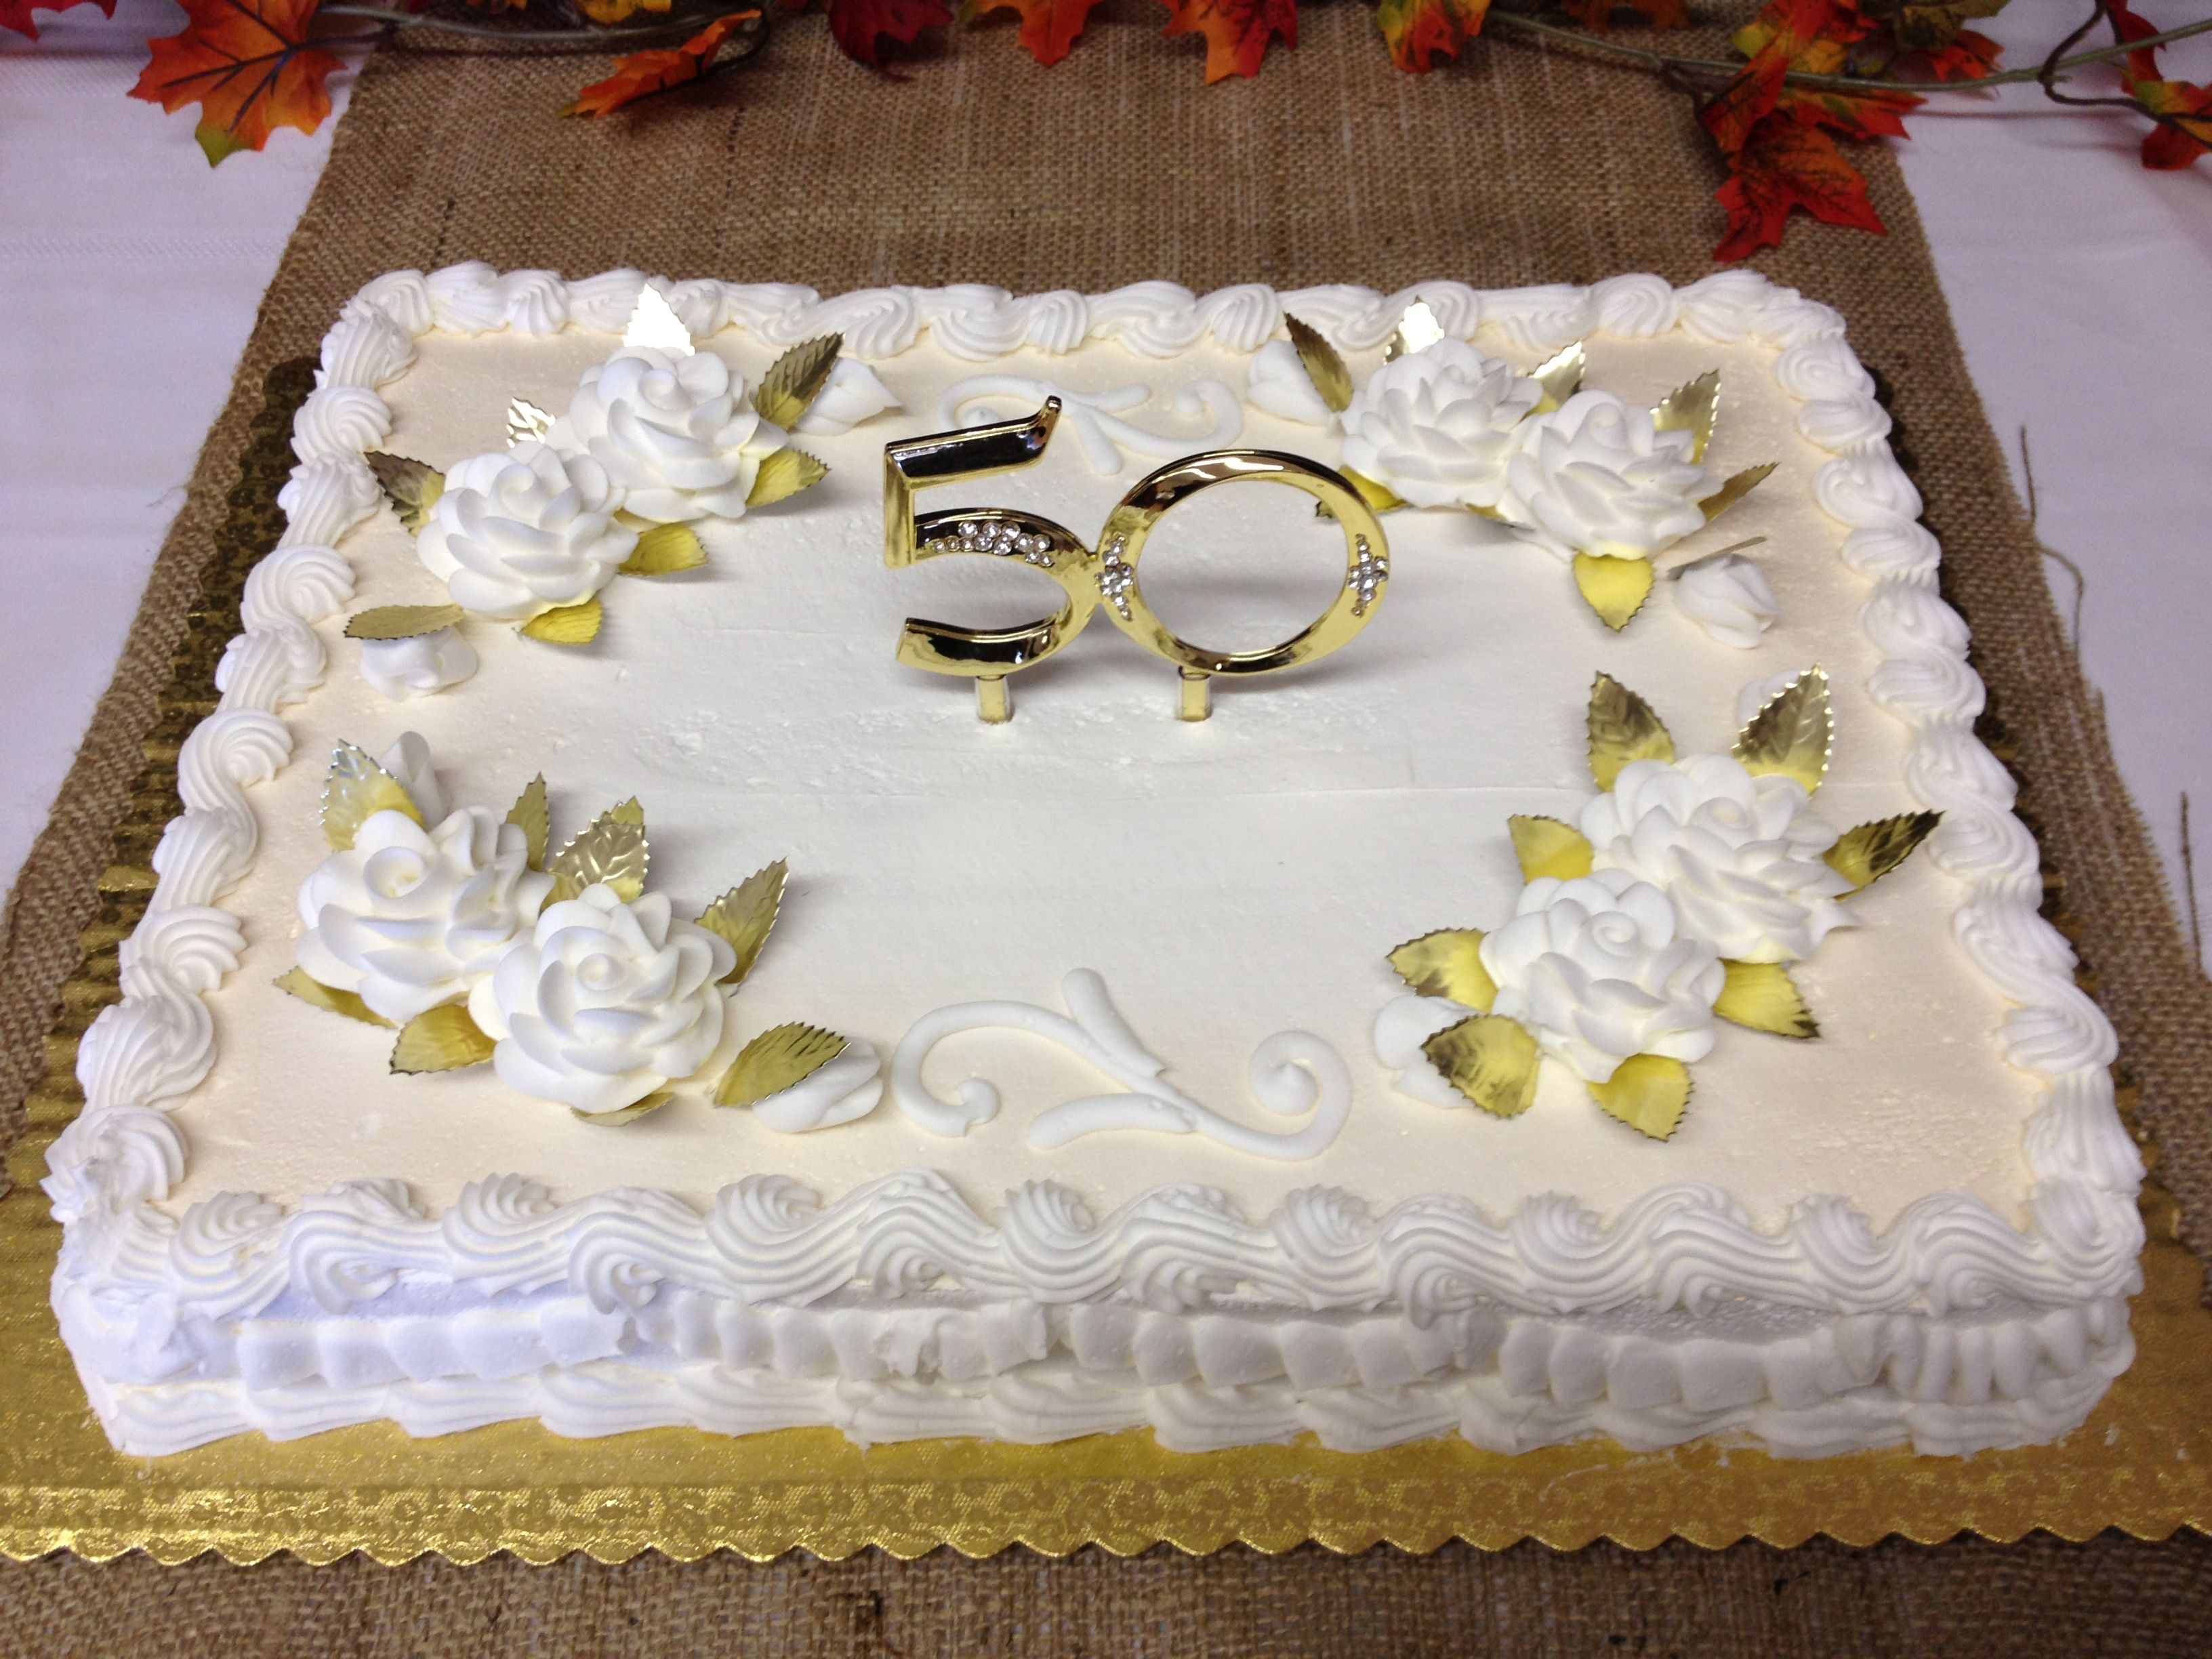 Sheet Cake Designs For Anniversary : This simple anniversary sheet cake had a gold and diamond ...